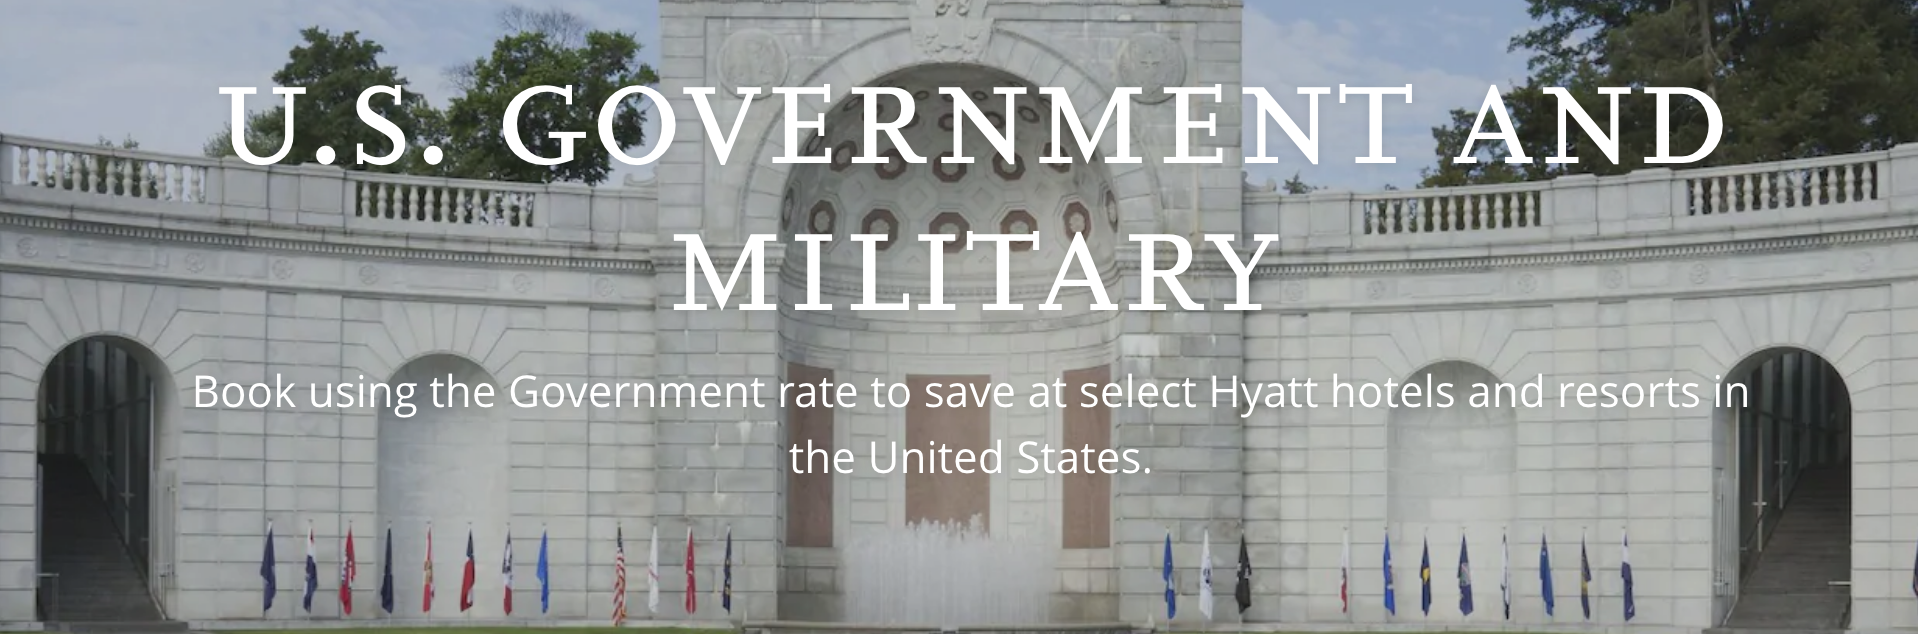 Hyatt Hotels Military Veteran Discounts